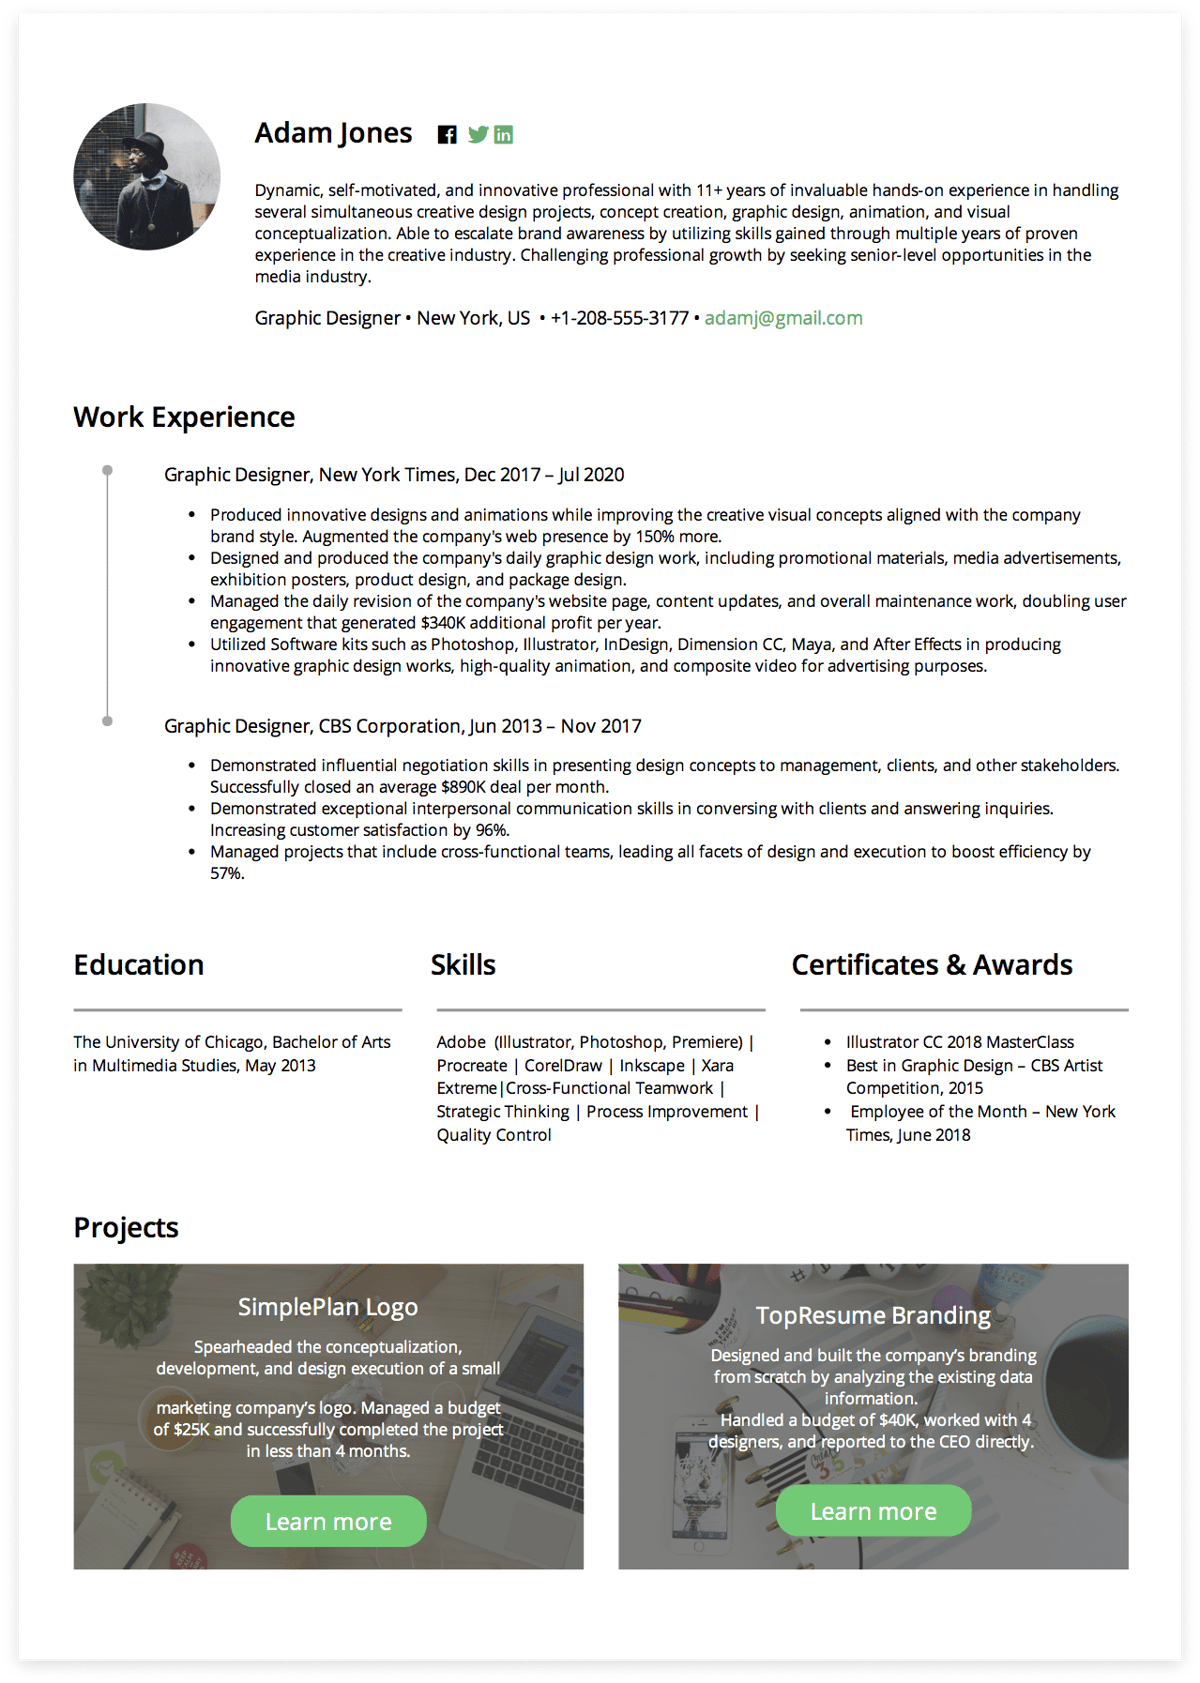 Click to download Graphic Designer resume example! Generated via CakeResume.